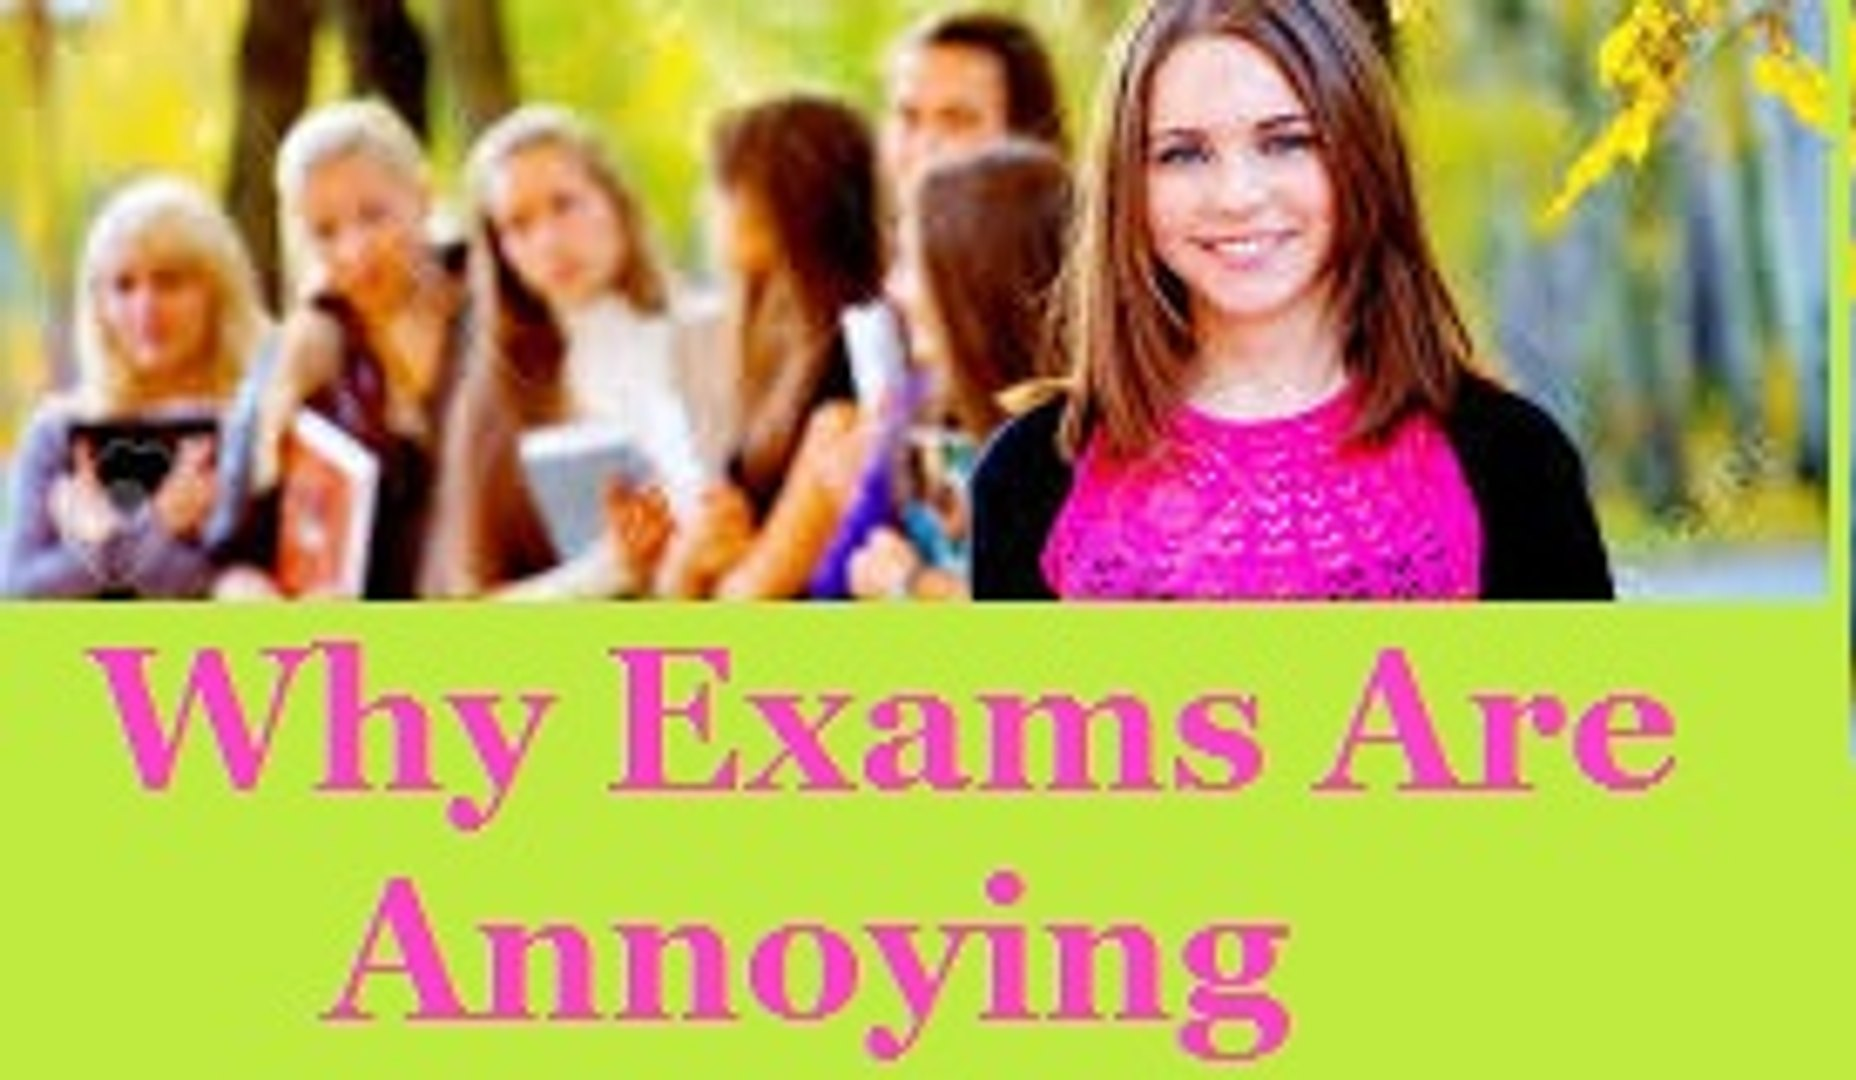 Why Exams are Annoying 2016